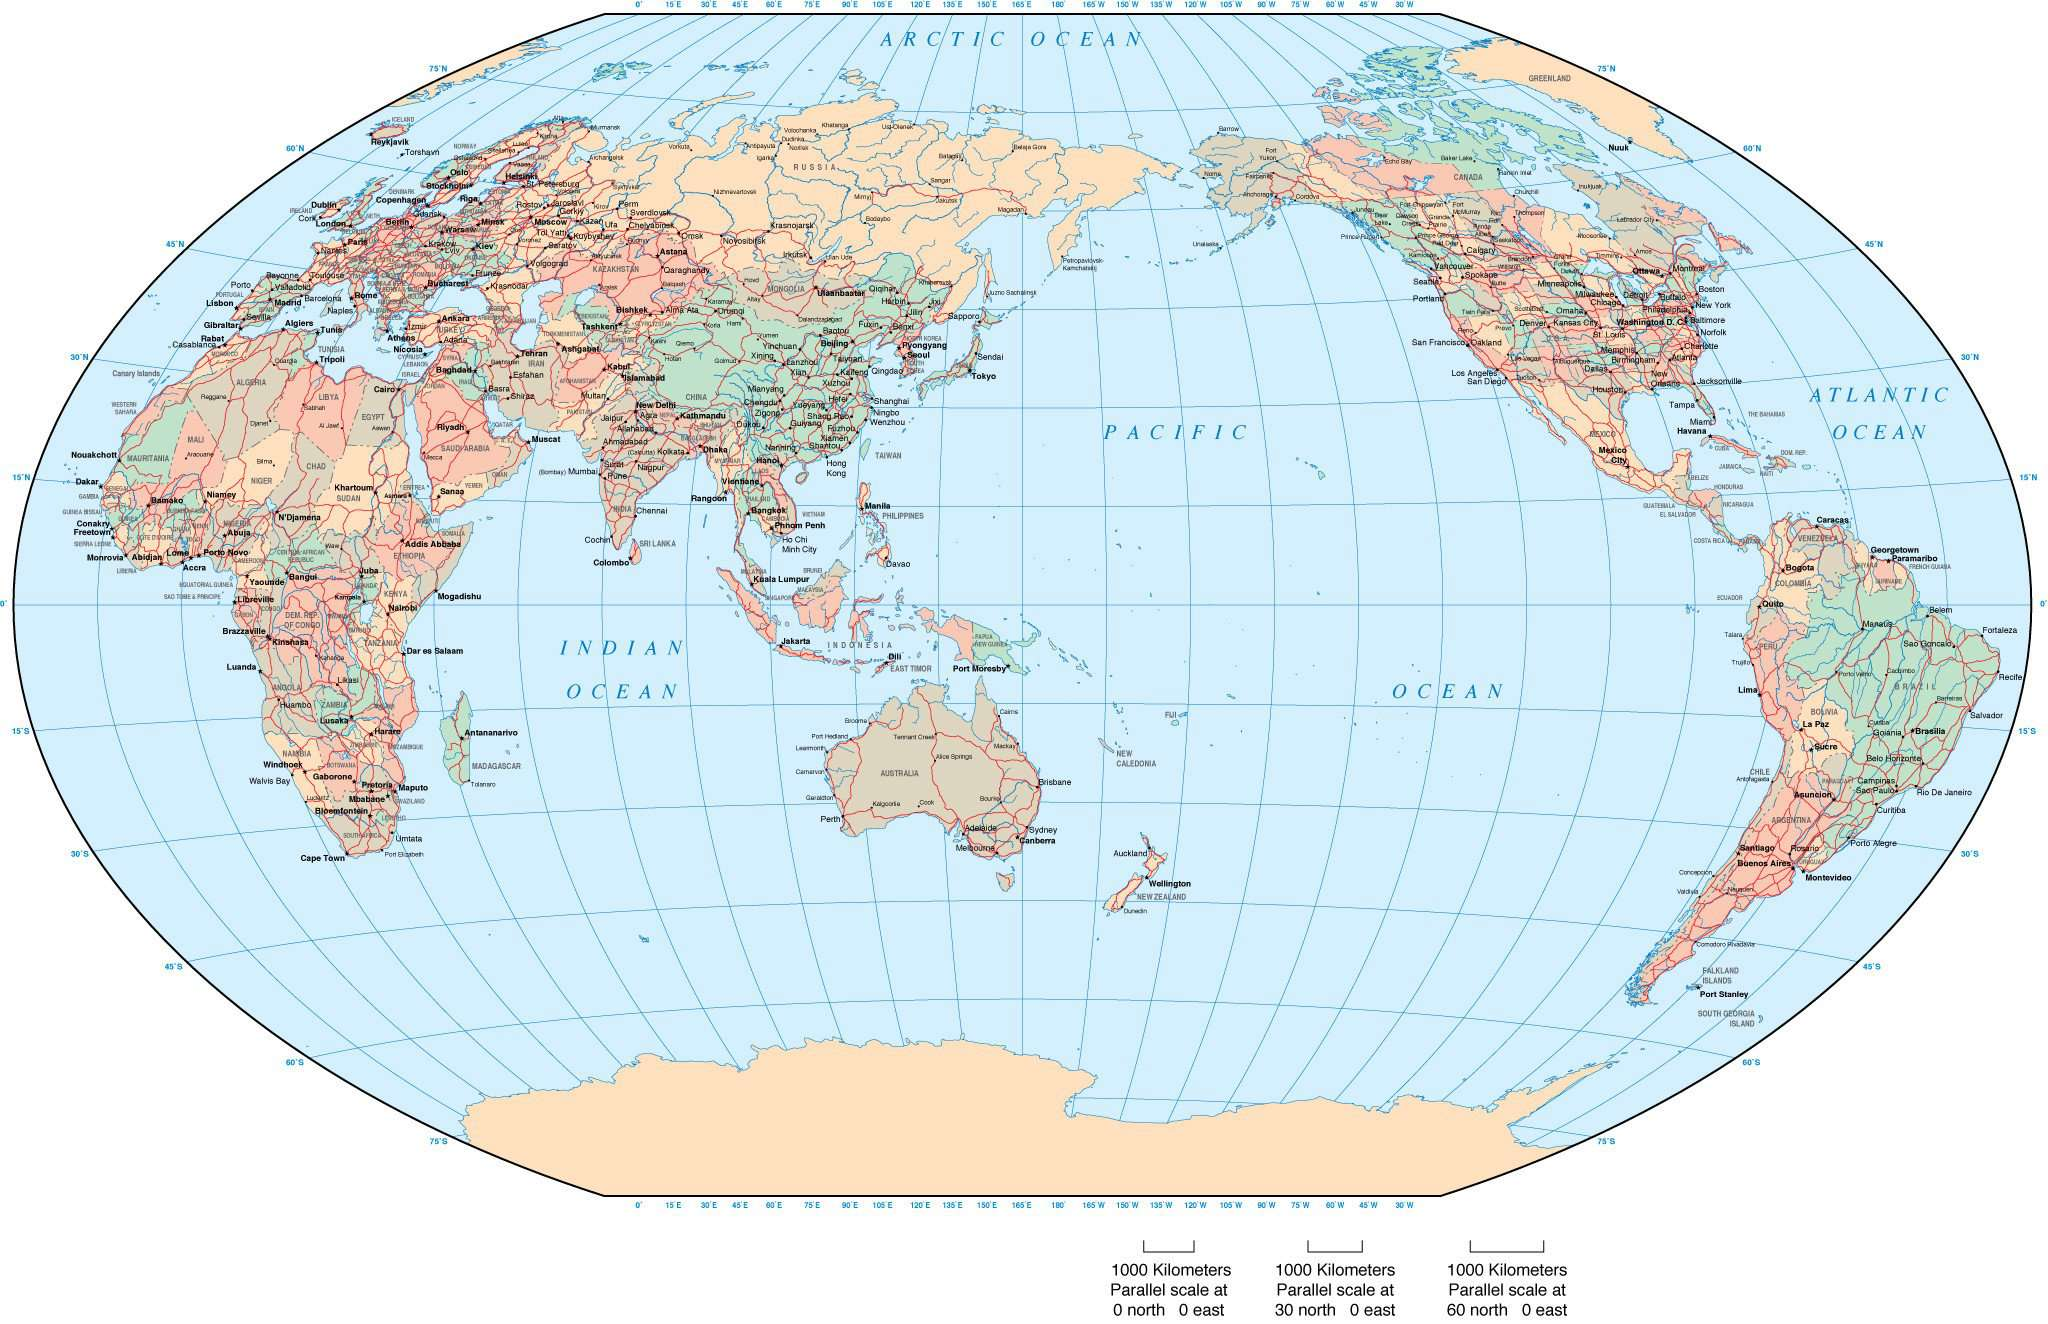 Australia In World Map.World Map Asia Australia Centered Winkel Tripel Projection